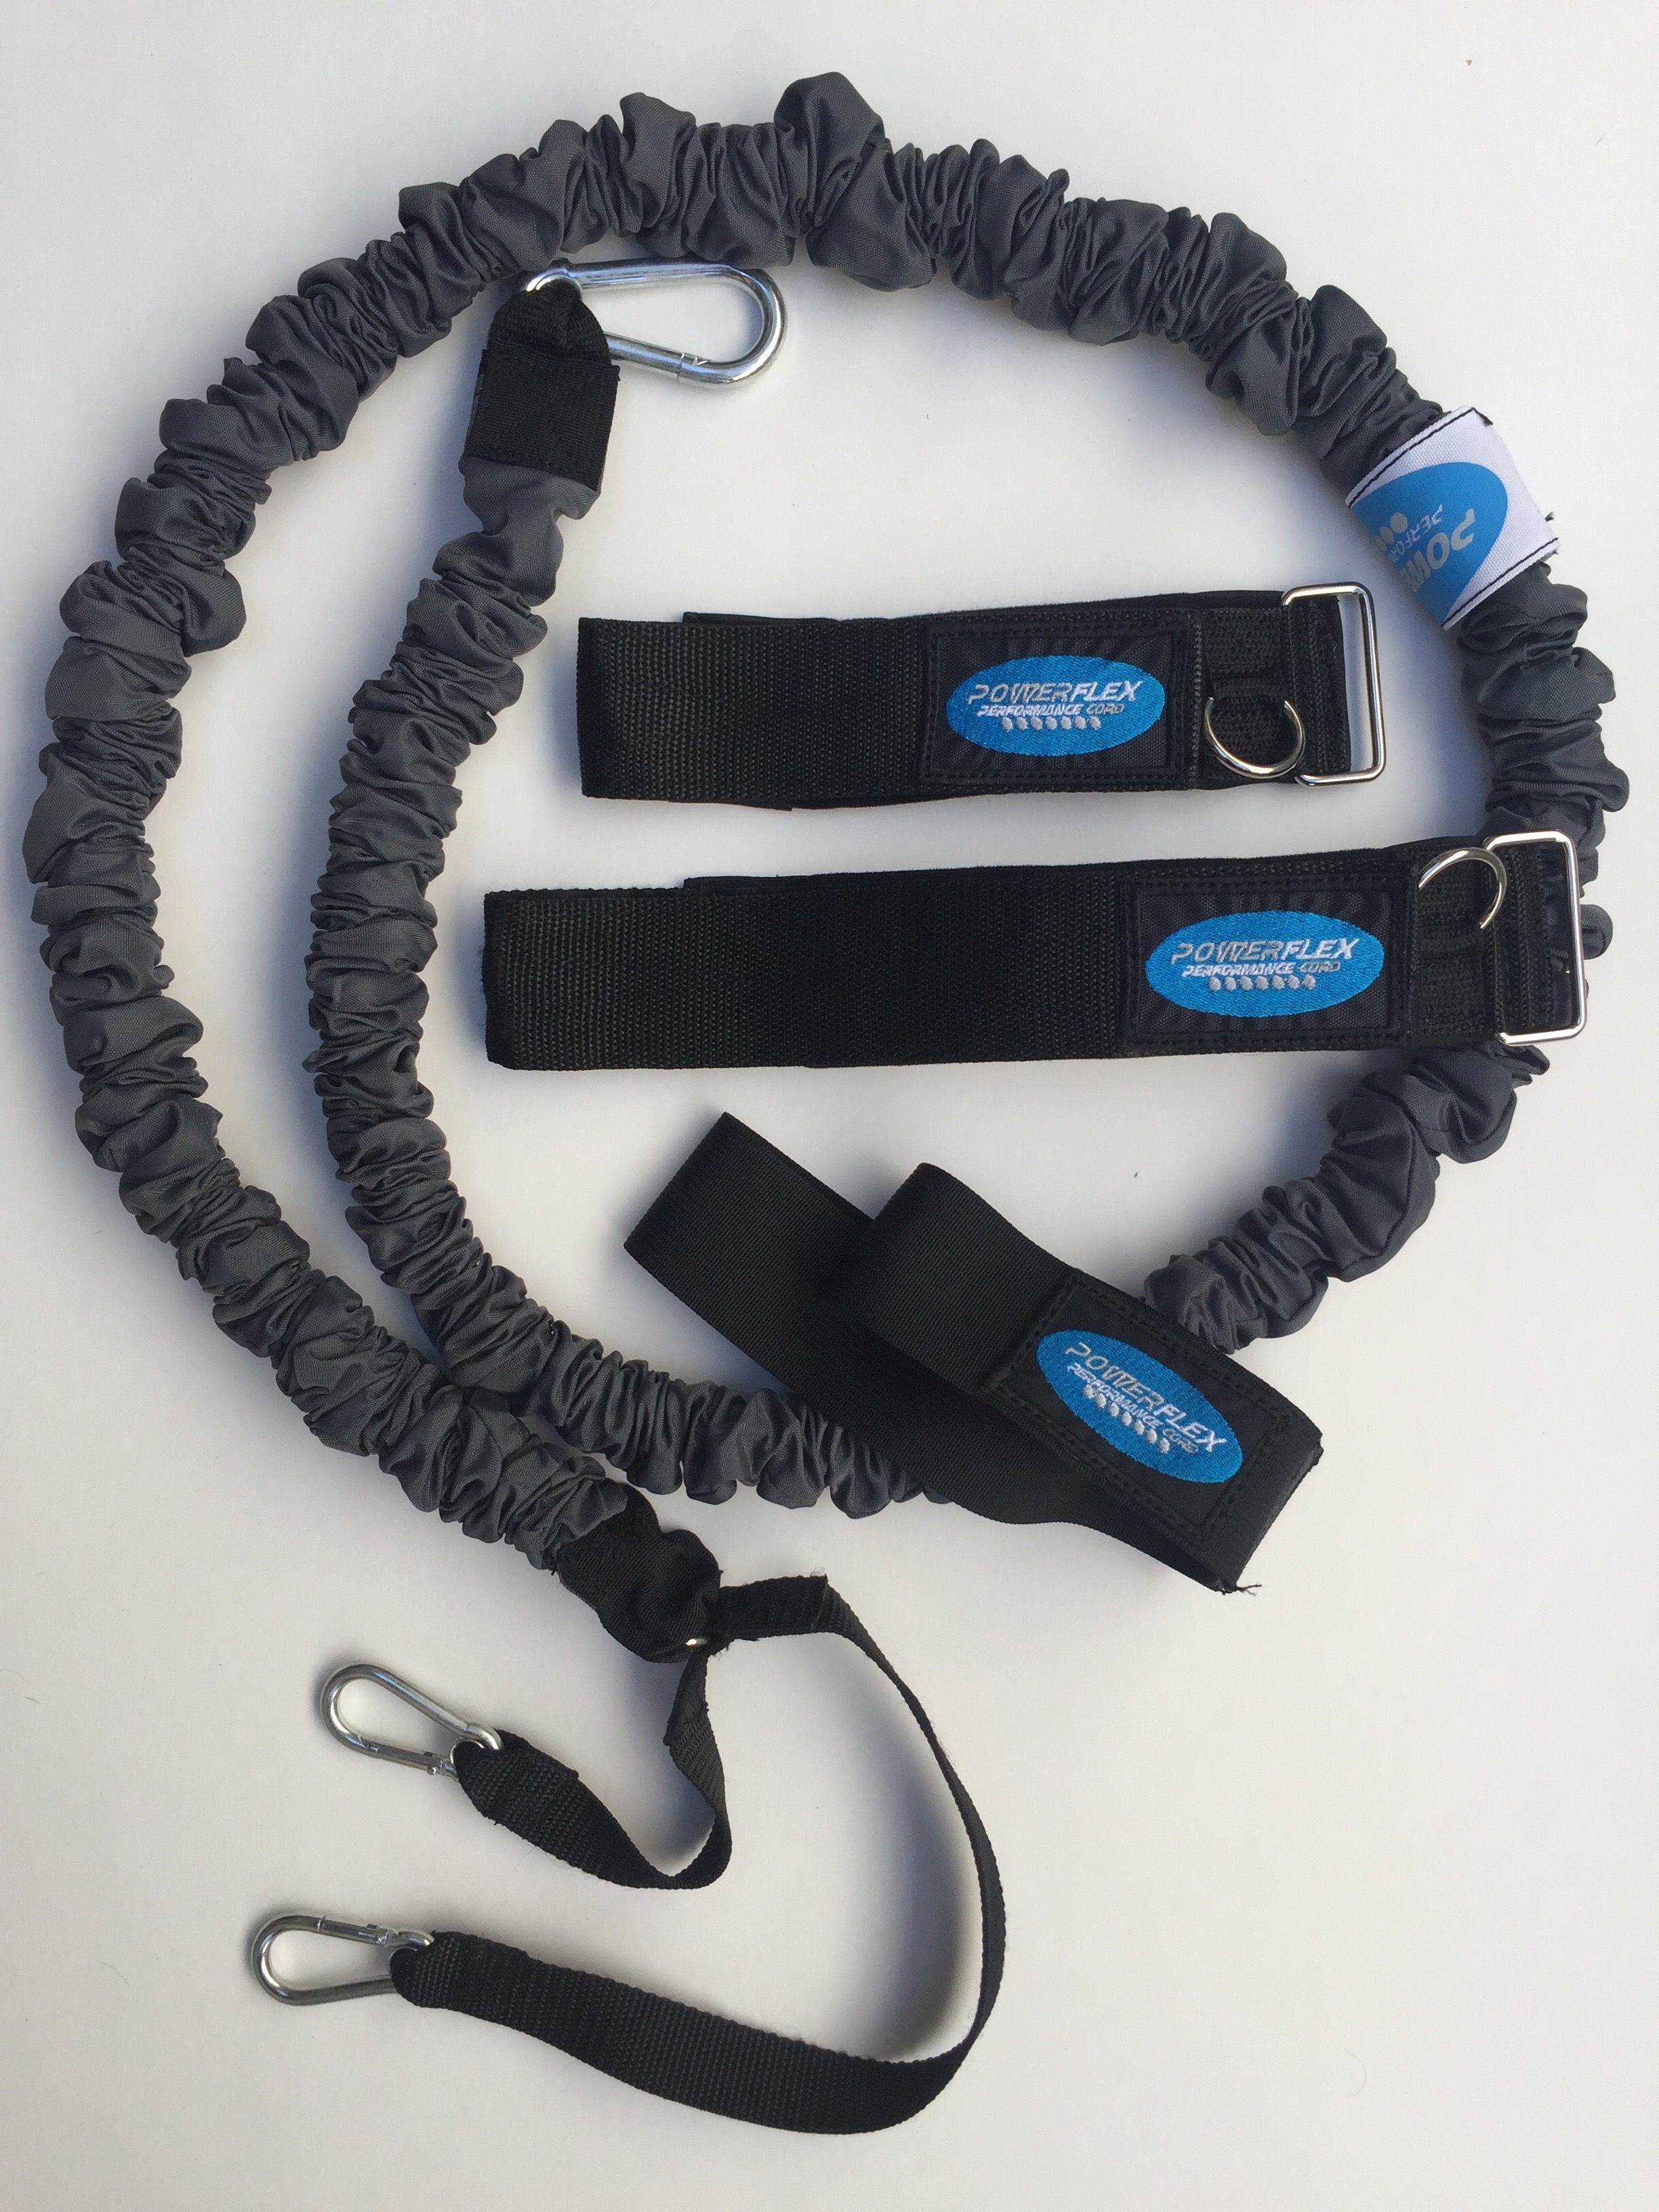 The Powerflex Performance Cord - BUY NOW